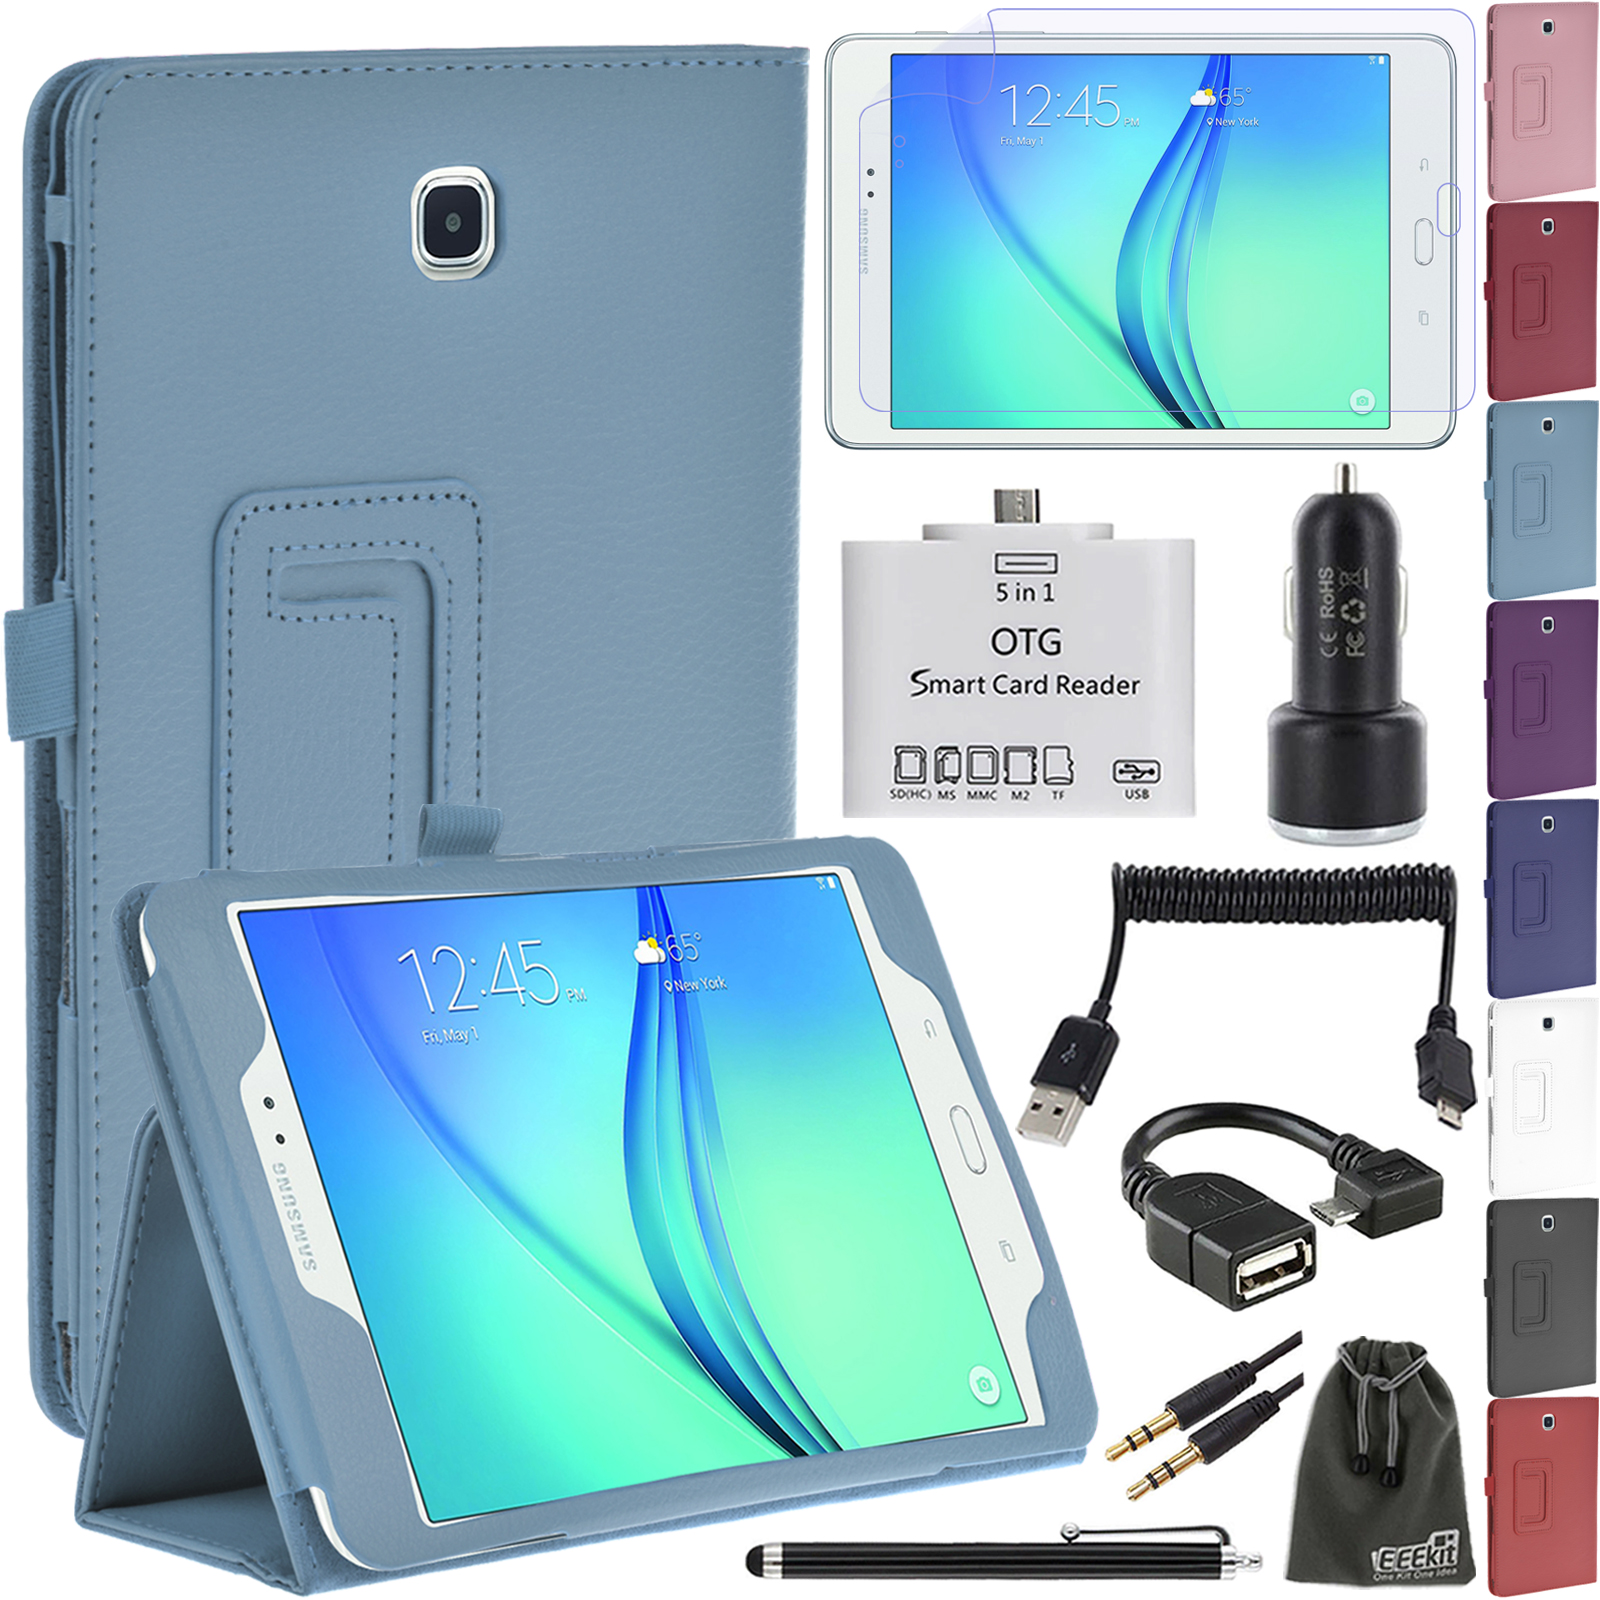 Cover Case, Screen Protector, Micro USB OTG Card Reader/Cable, Car Charger, EEEKit 8in1 Kit for Samsung Galaxy Tab A 8.0